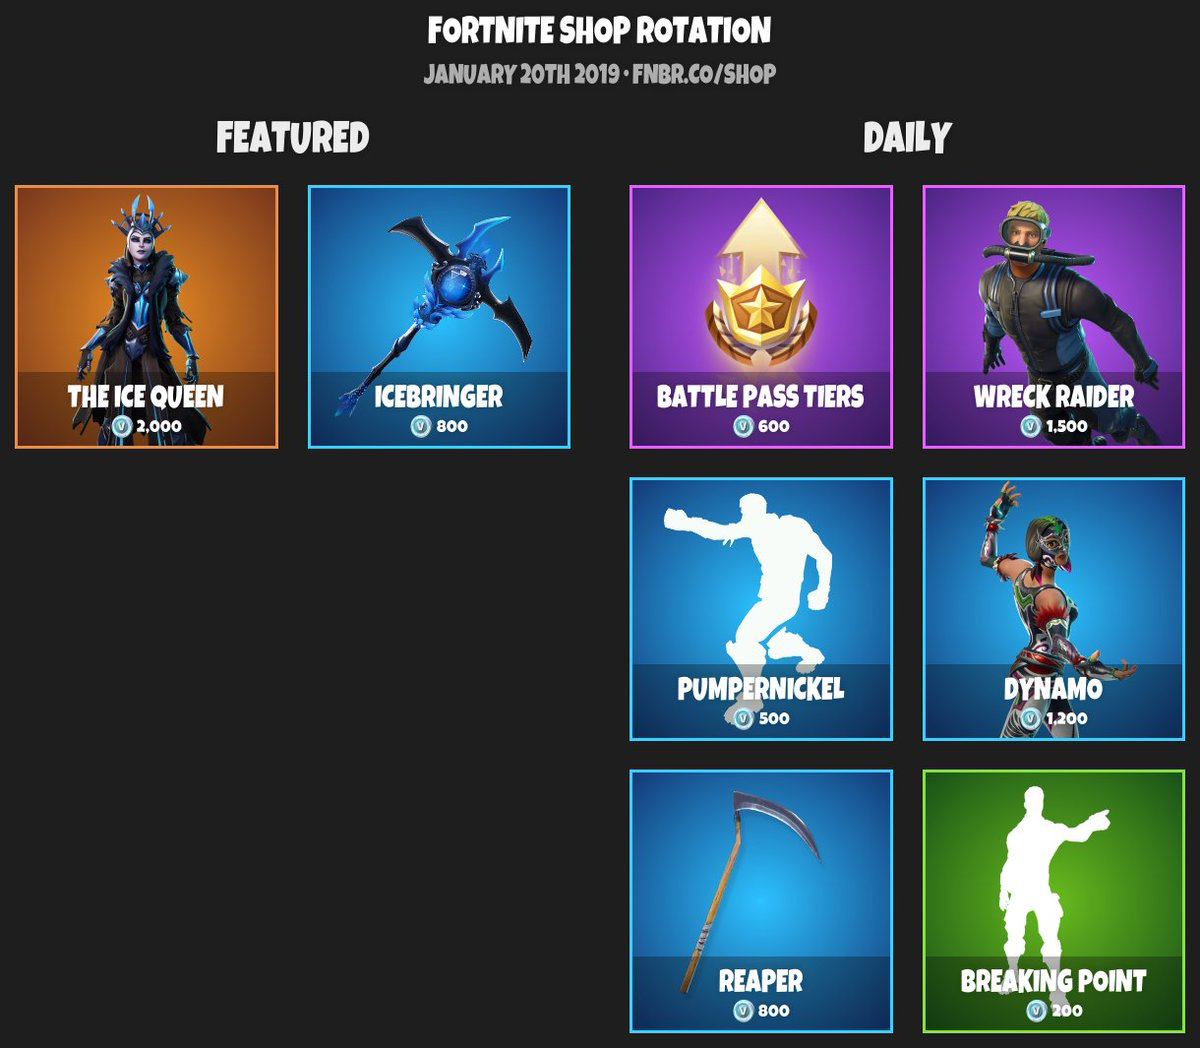 fortnite item shop for january 20th 2019 https fnbr co shop pic twitter com rusamc81he - fortnite shop 54 2019